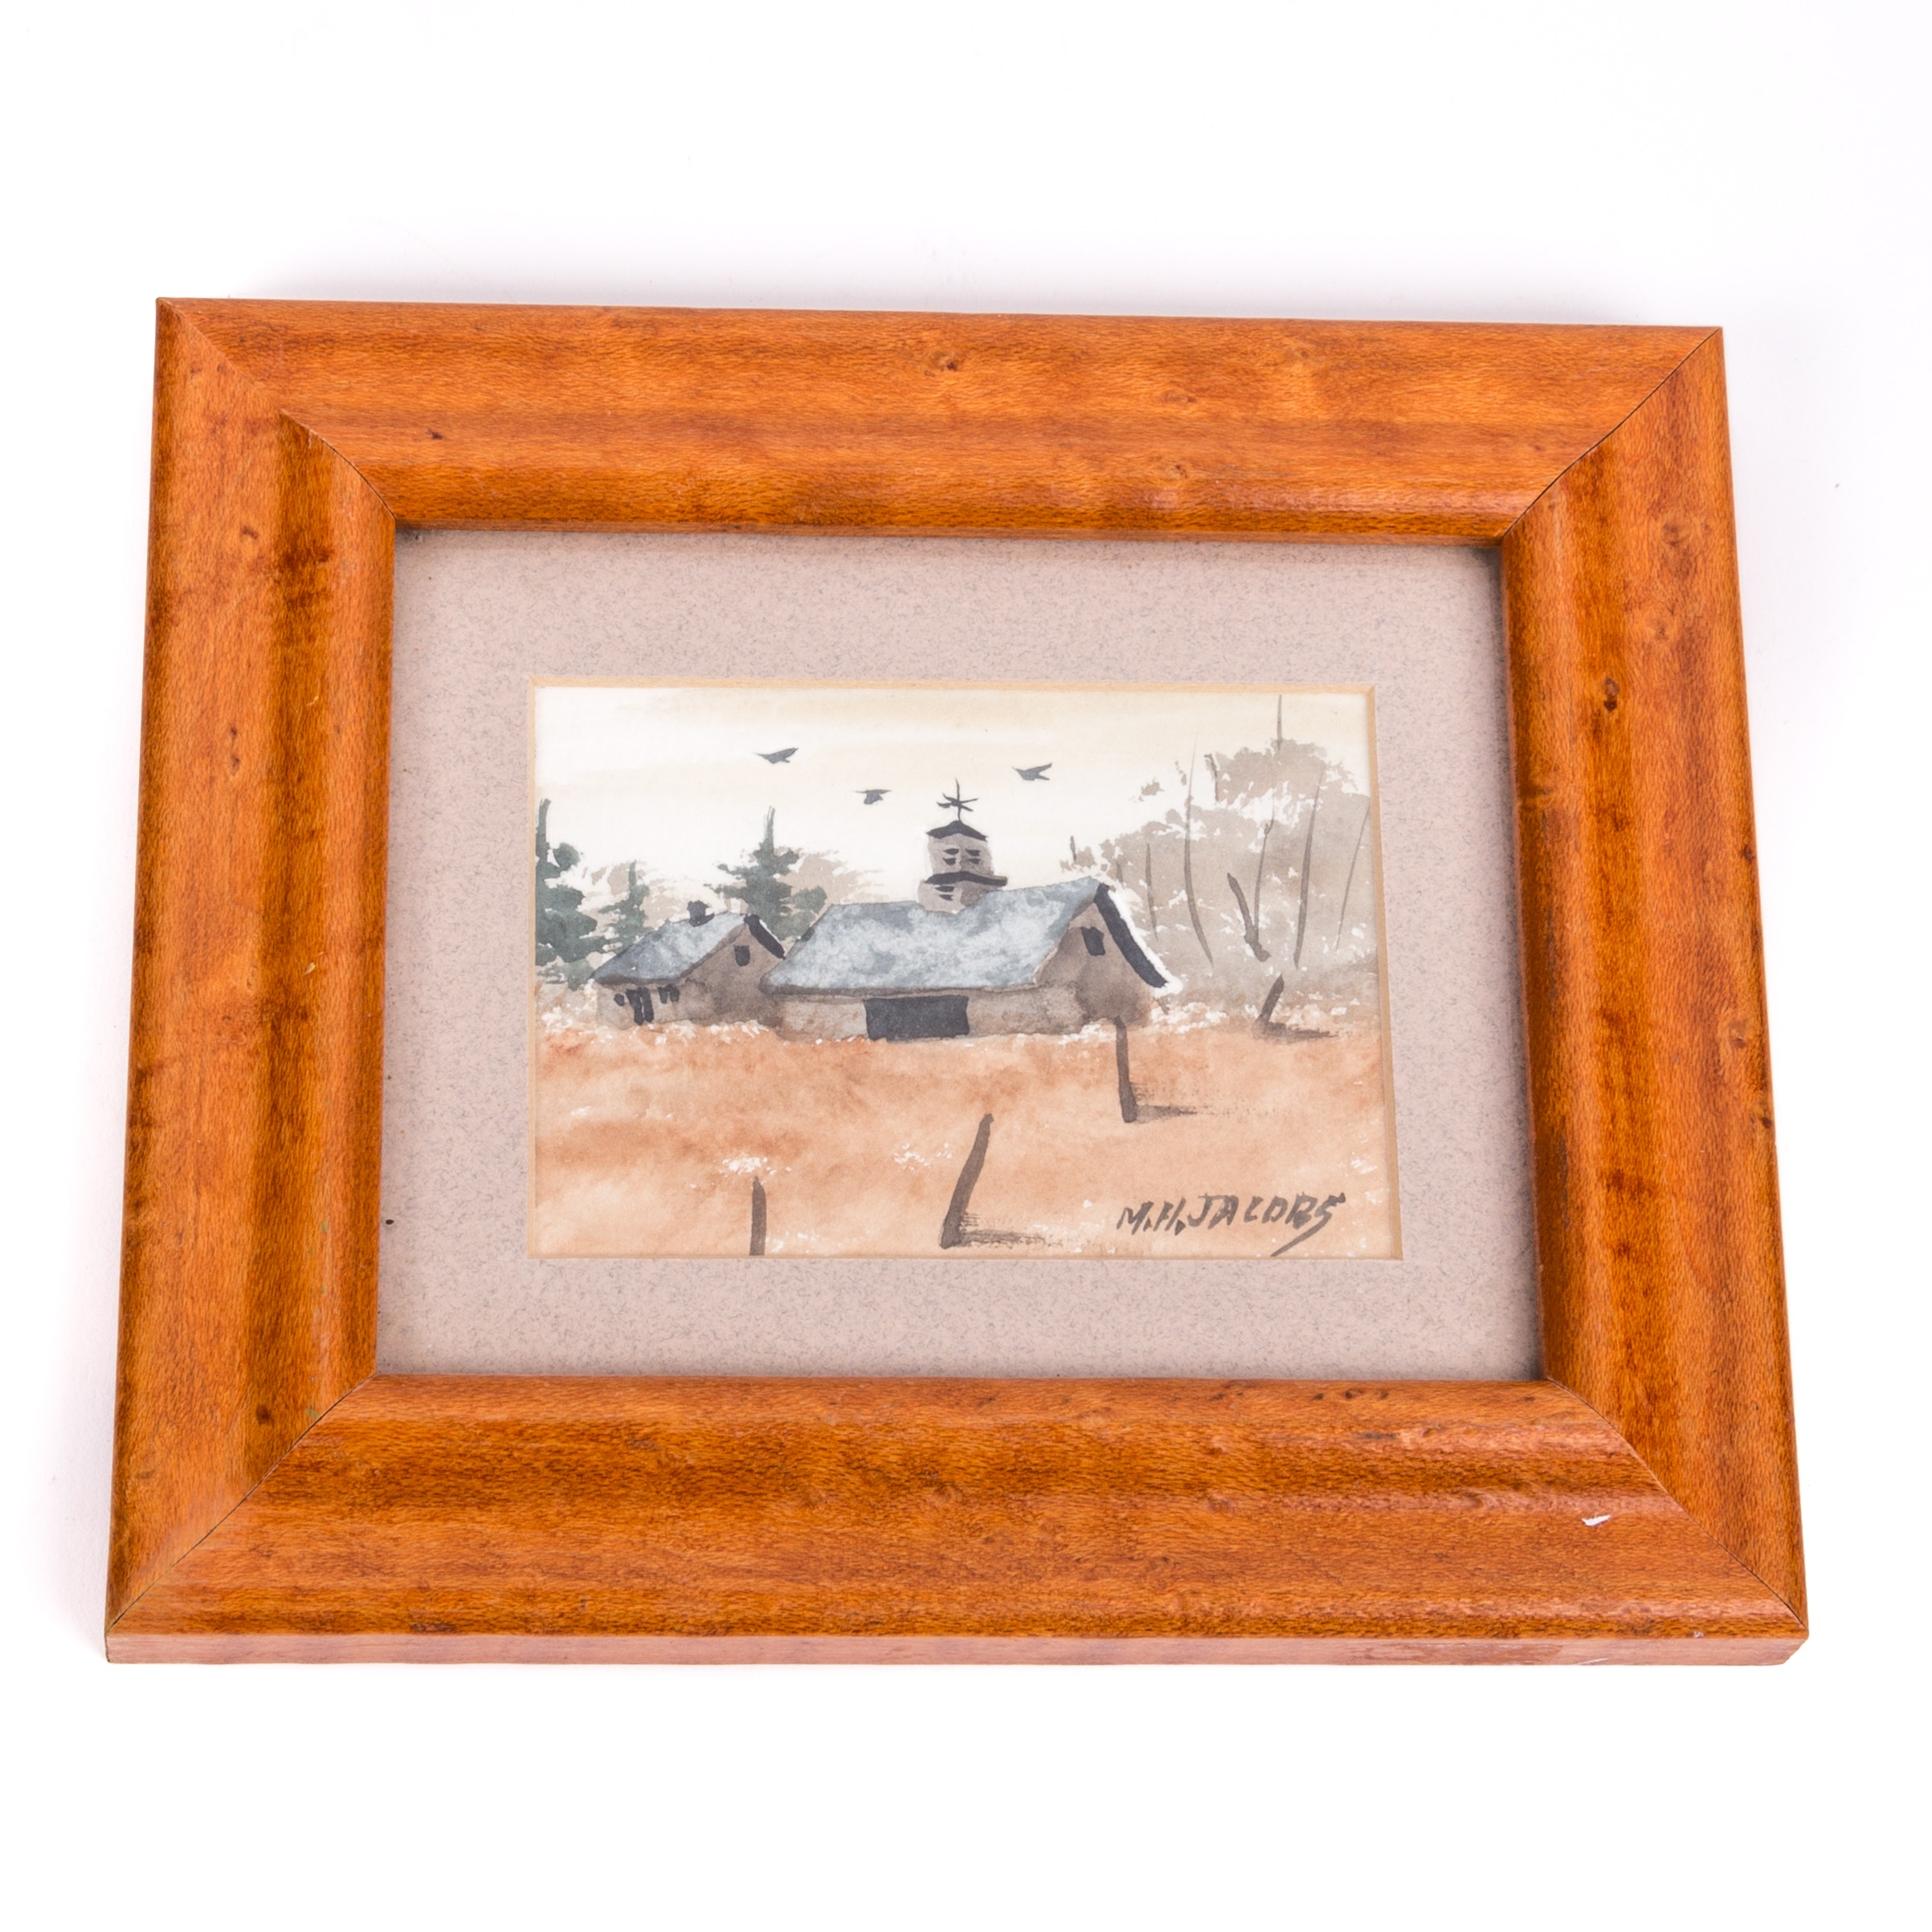 M. H. Jacobs Miniature Watercolor Painting of Barn